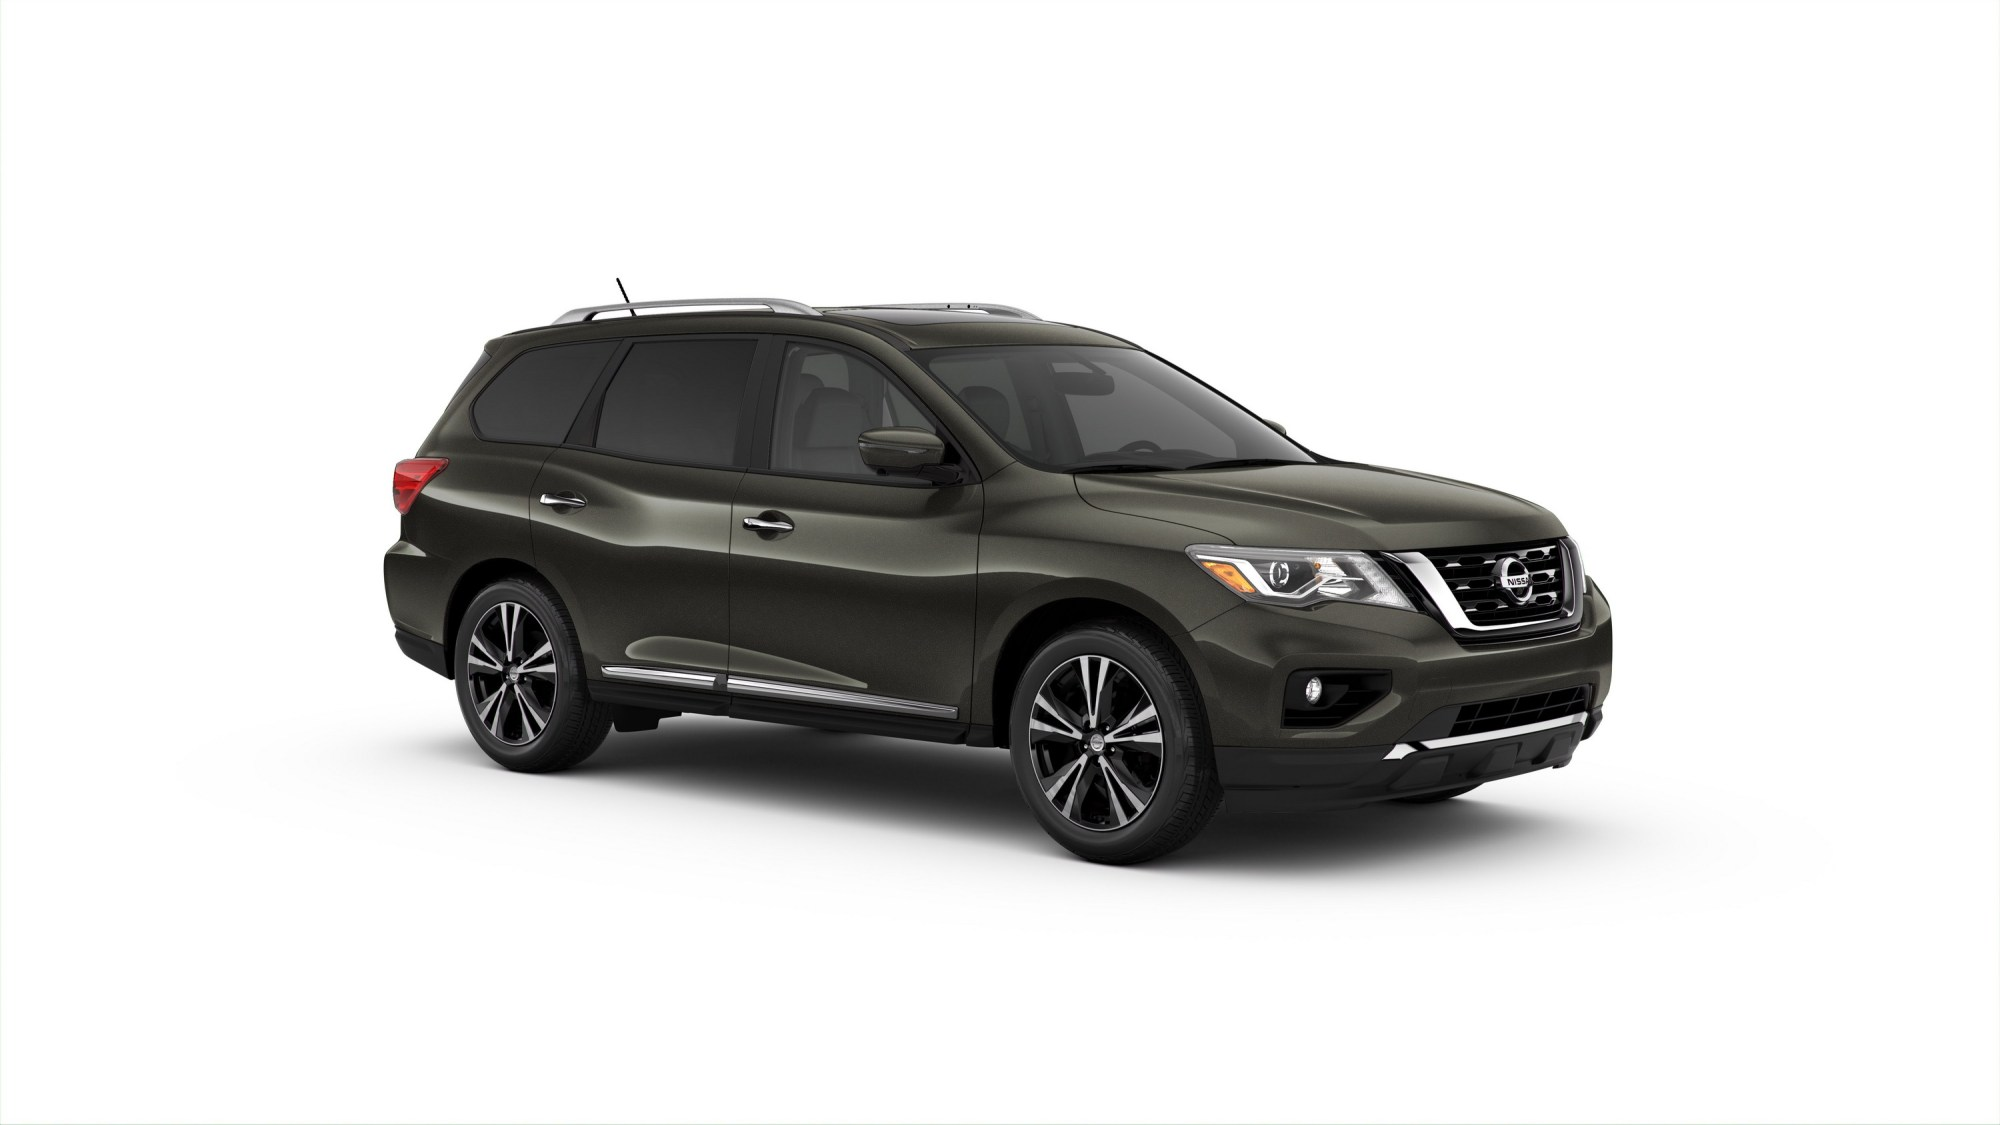 hight resolution of nissan pathfinder reviews specs prices photos and videos top speed